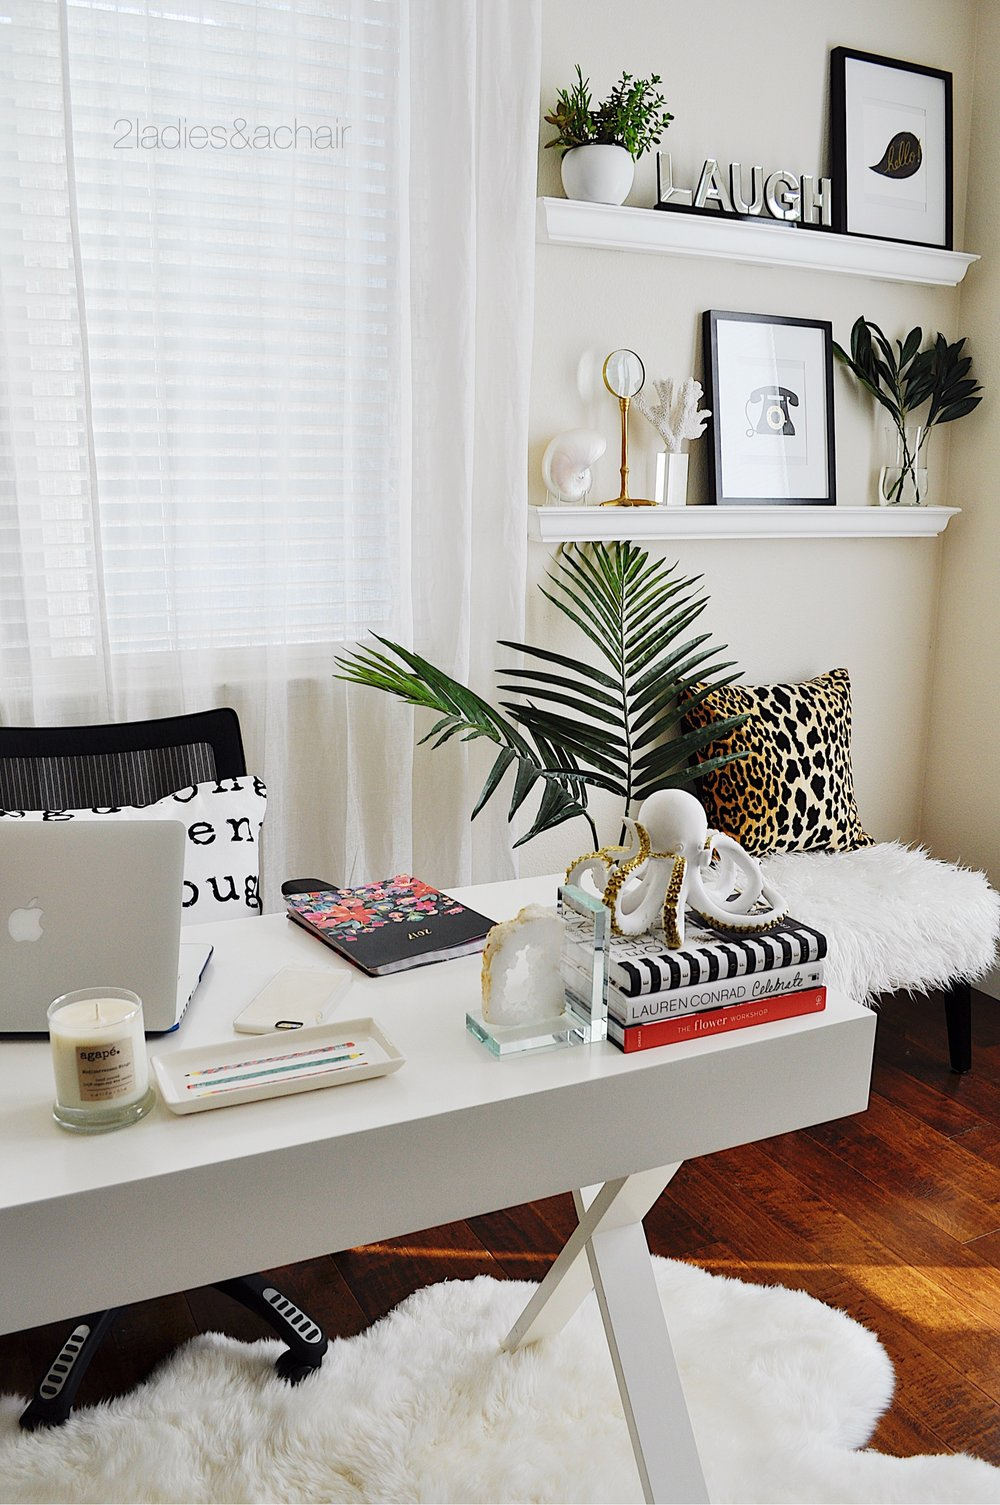 Home Office Refreshed — 2 Ladies & A Chair